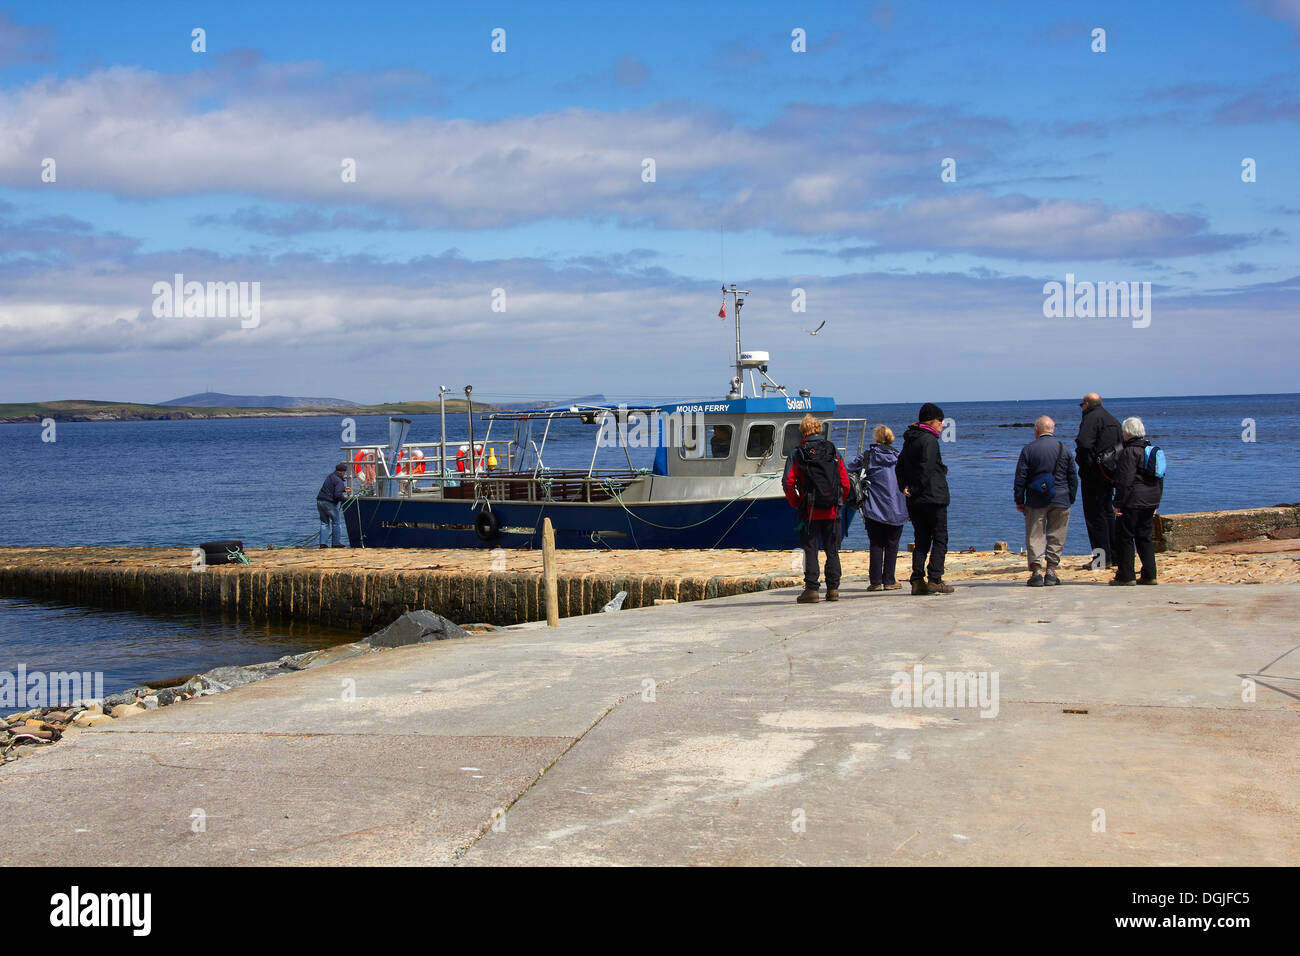 Tourists waiting to board the ferry to the island of Mousa. - Stock Image